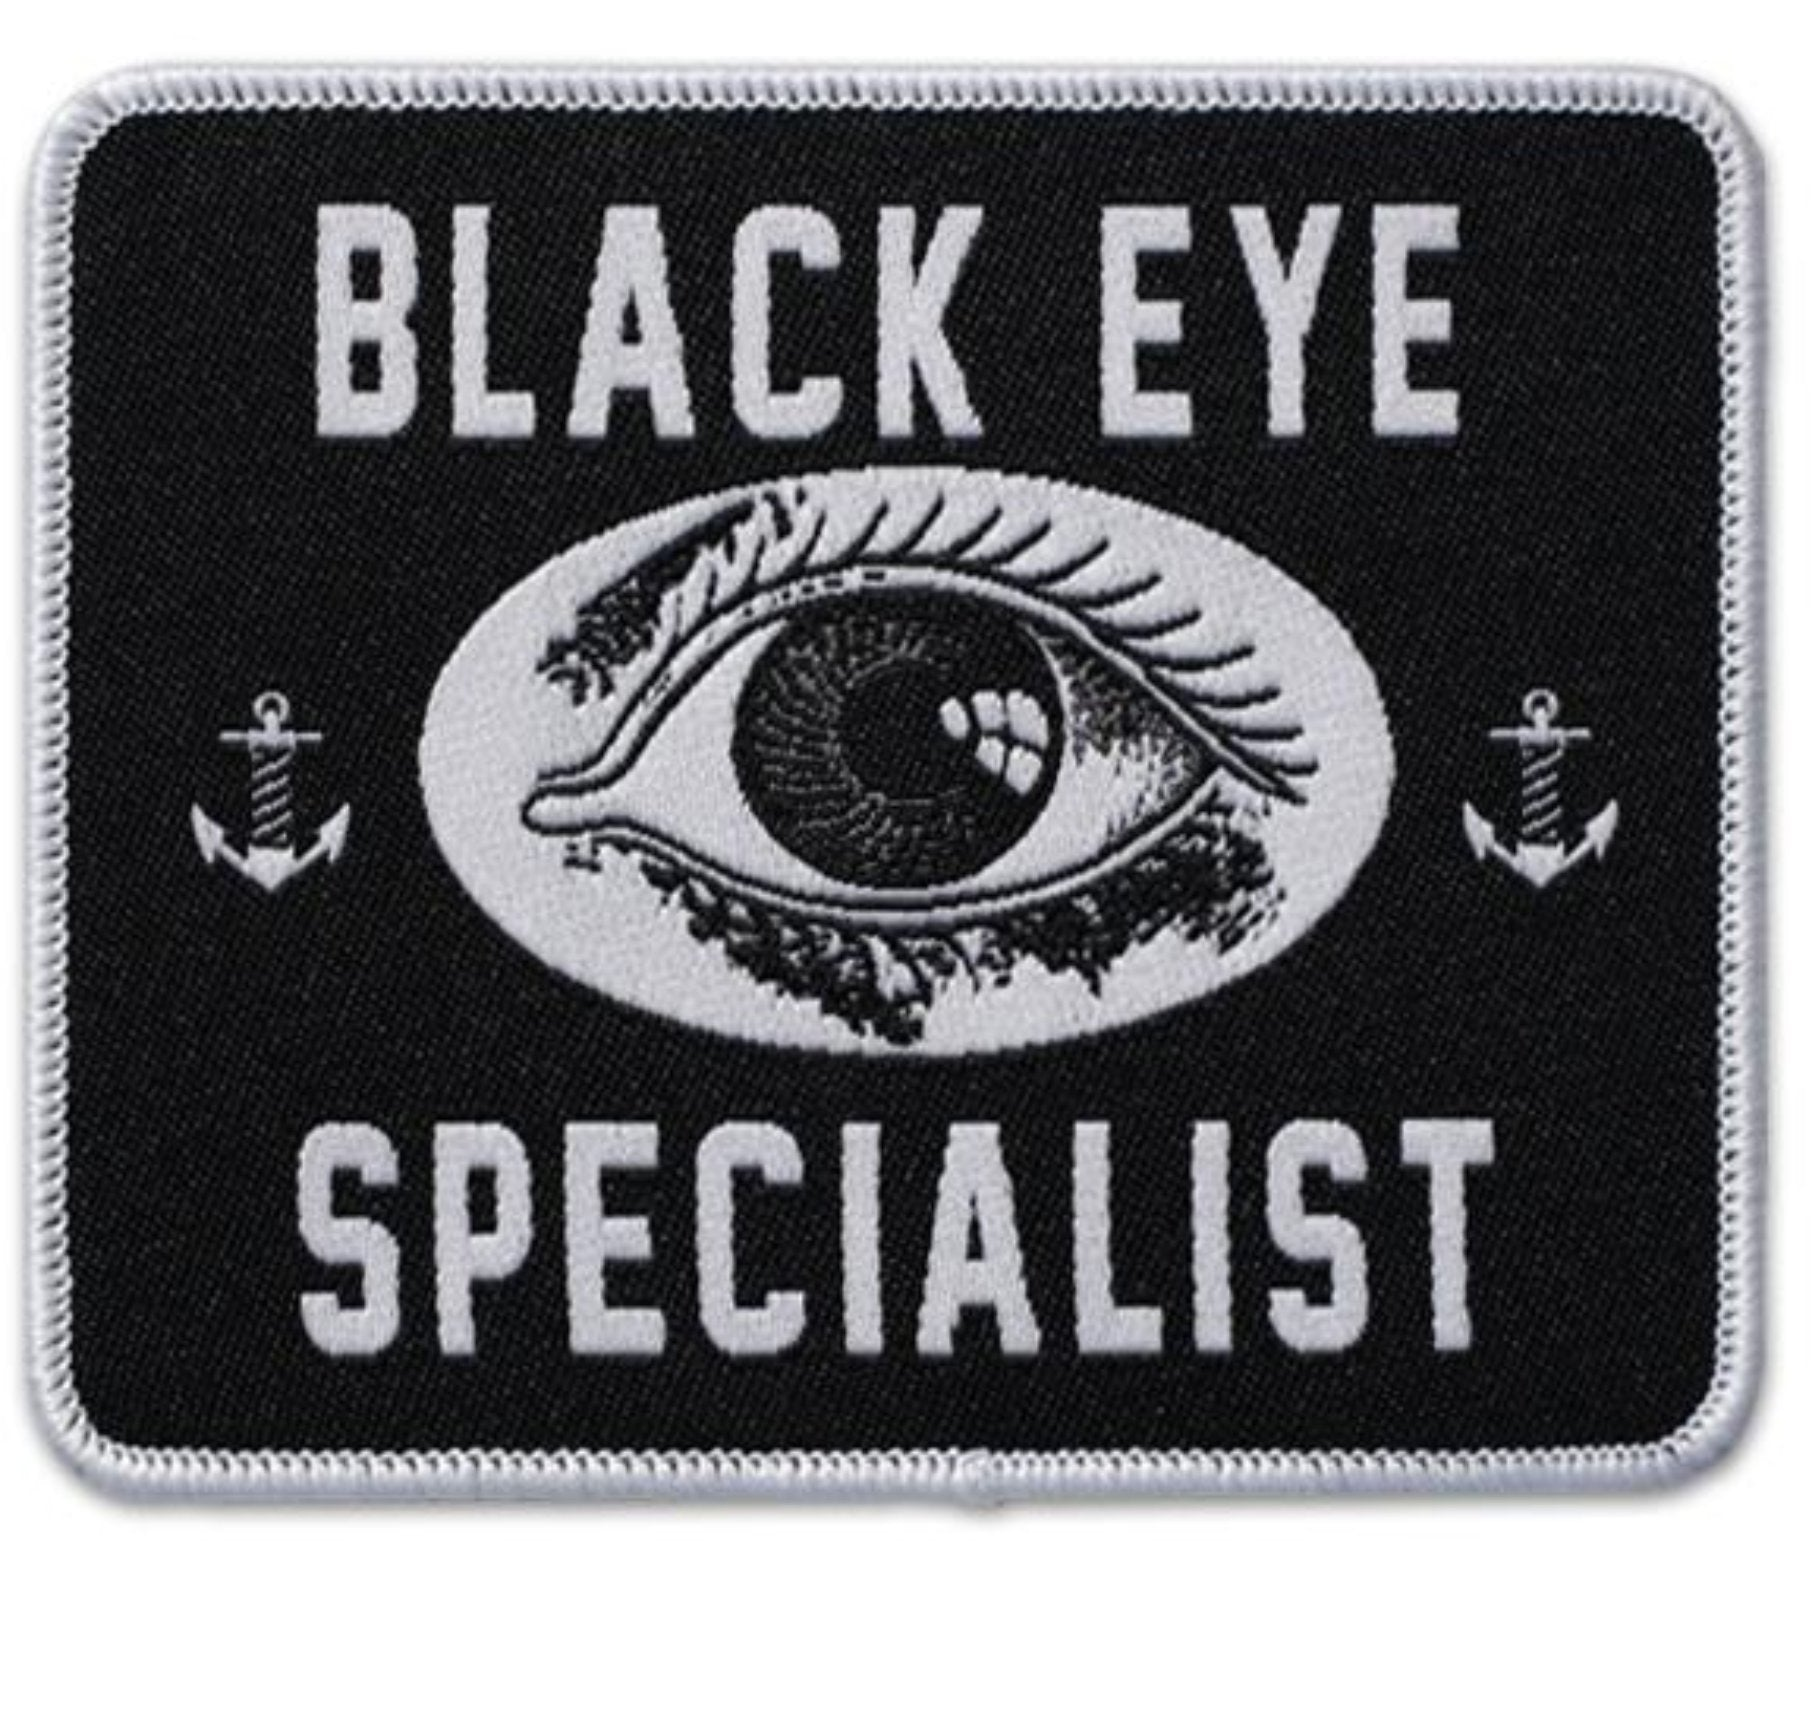 The BLACK EYE SPECIALIST Patch